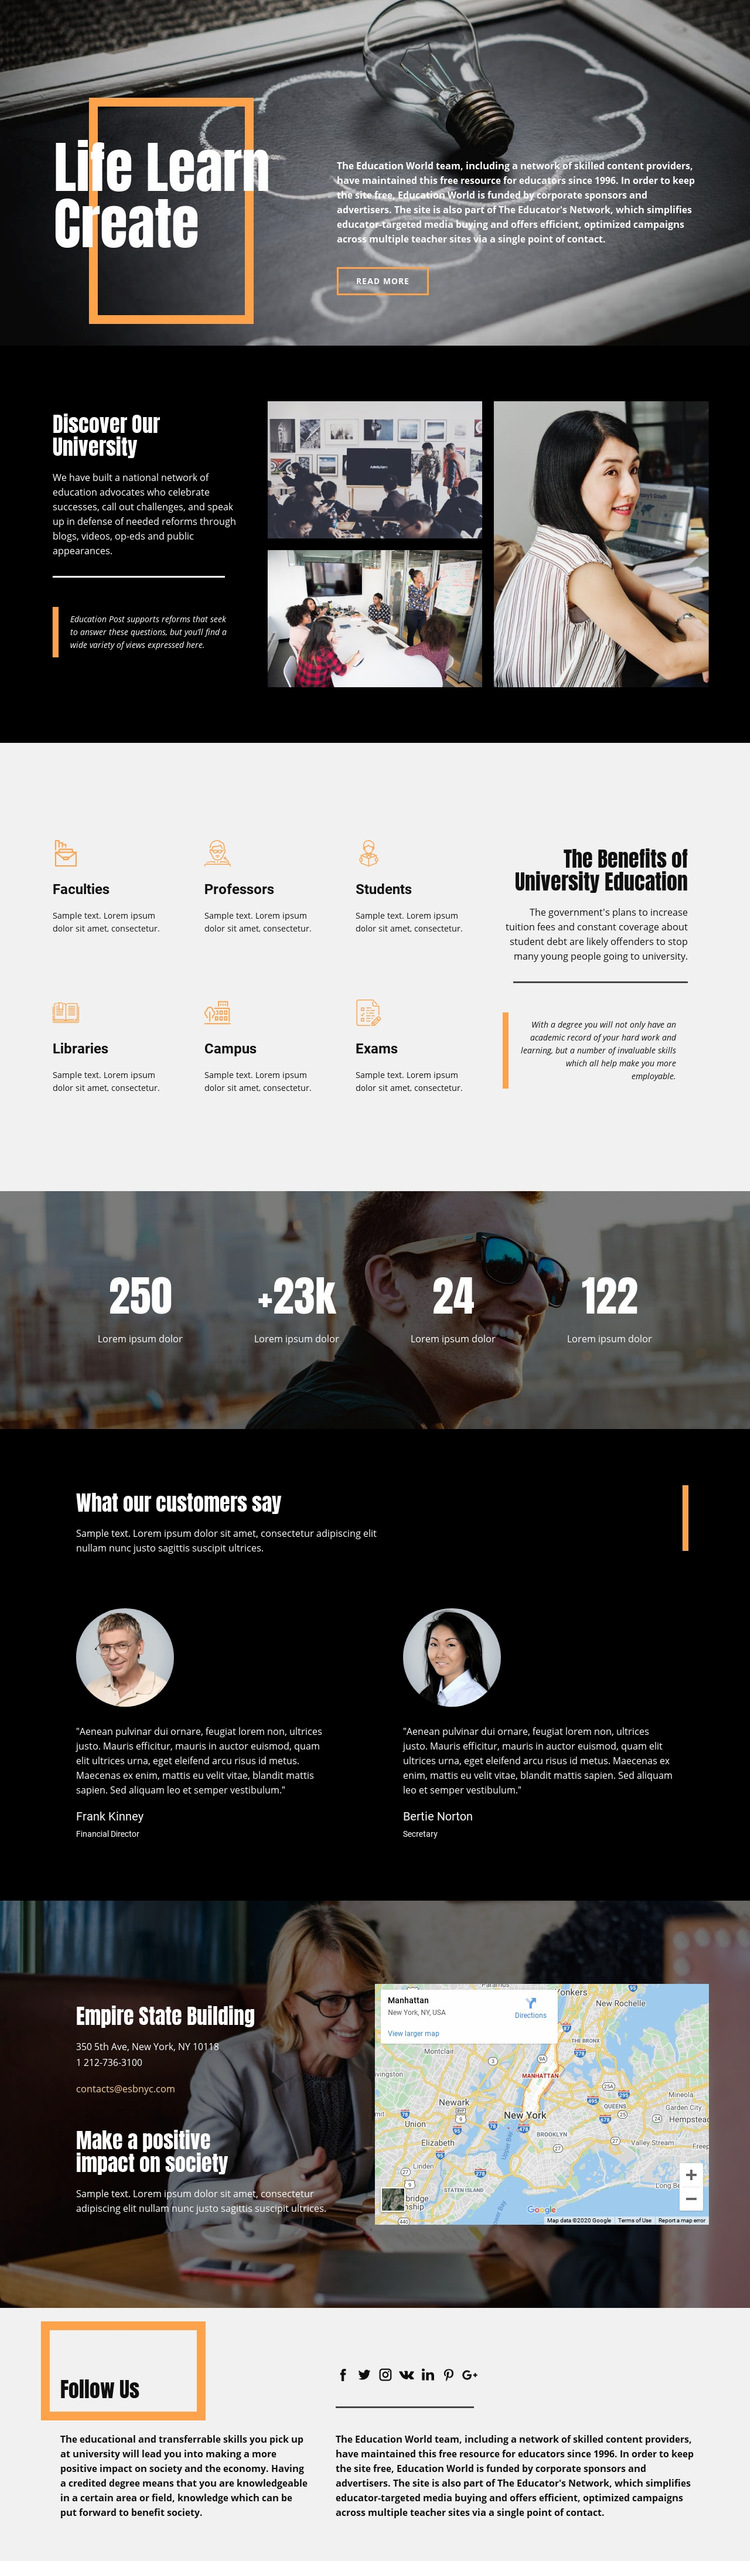 Discover highs of education Web Page Design